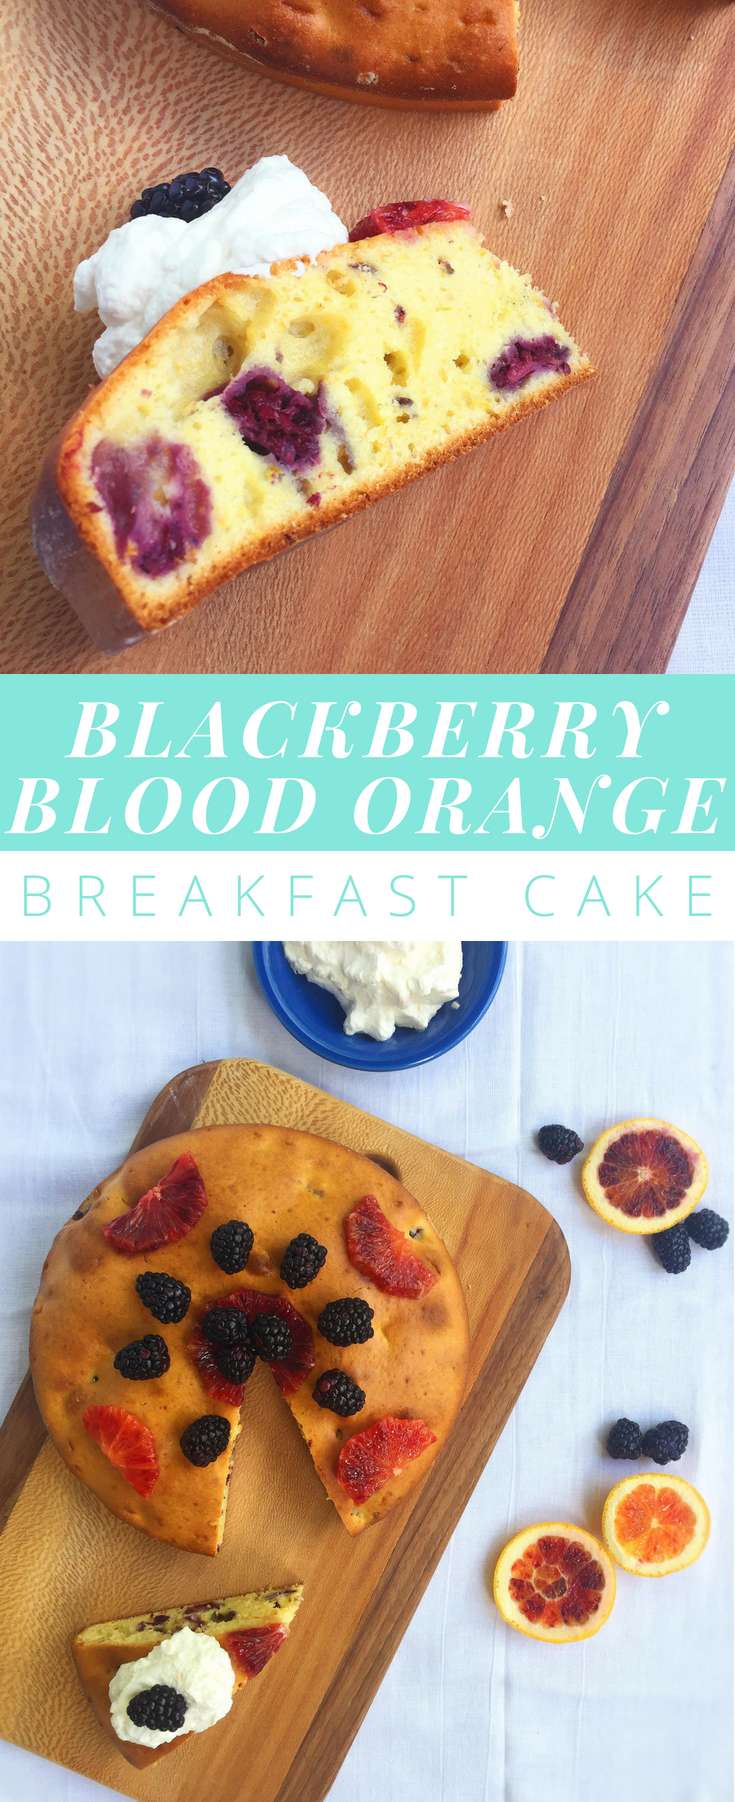 blackberry-blood-orange-breakfast-cake-pin.png